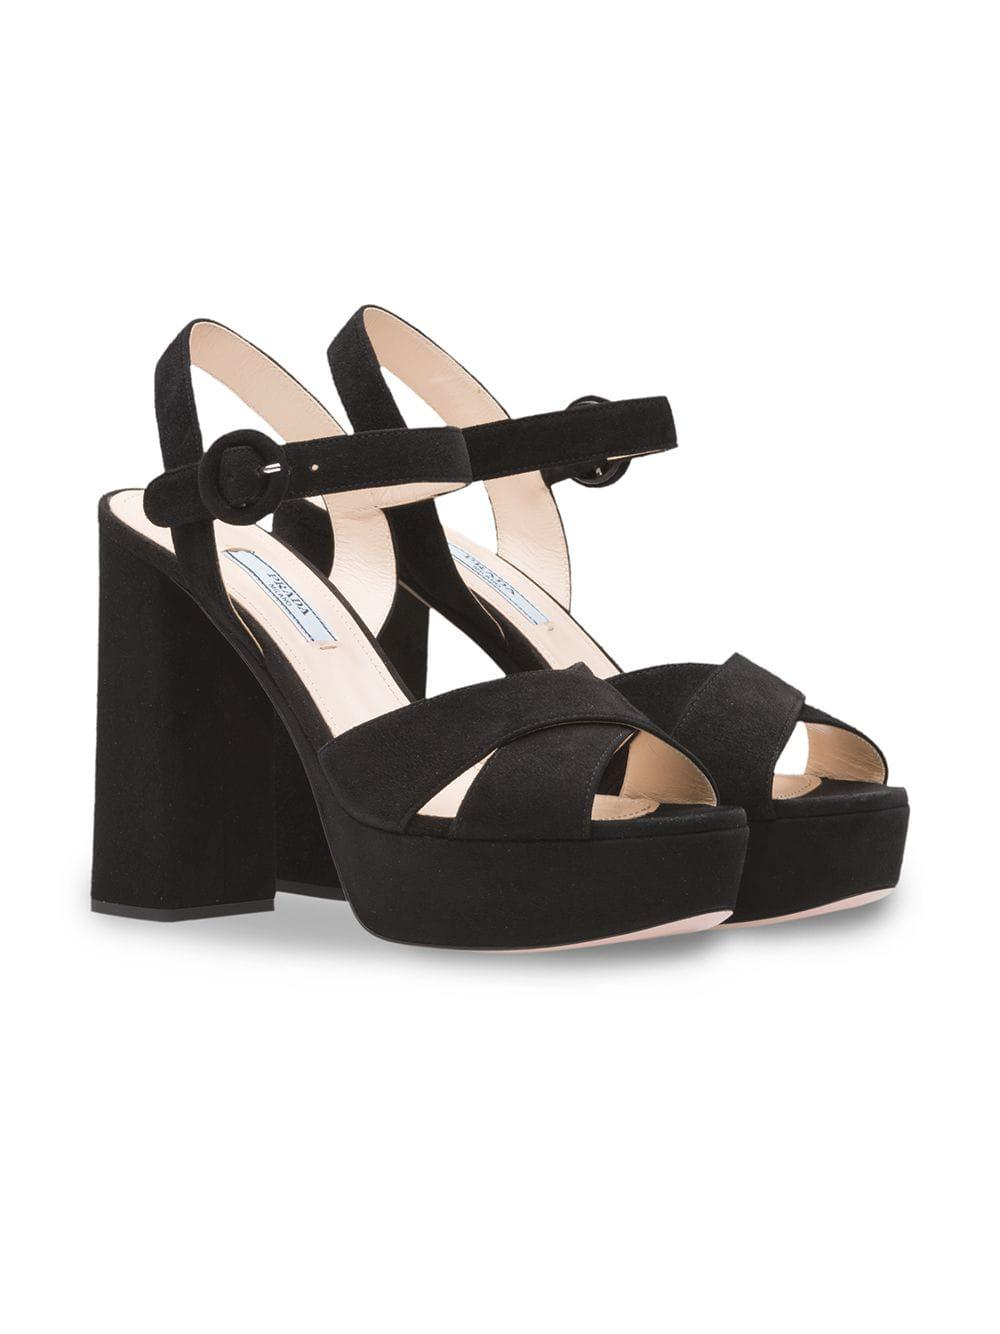 78c0515df17 Lyst - Prada Suede Platform Sandals in Black